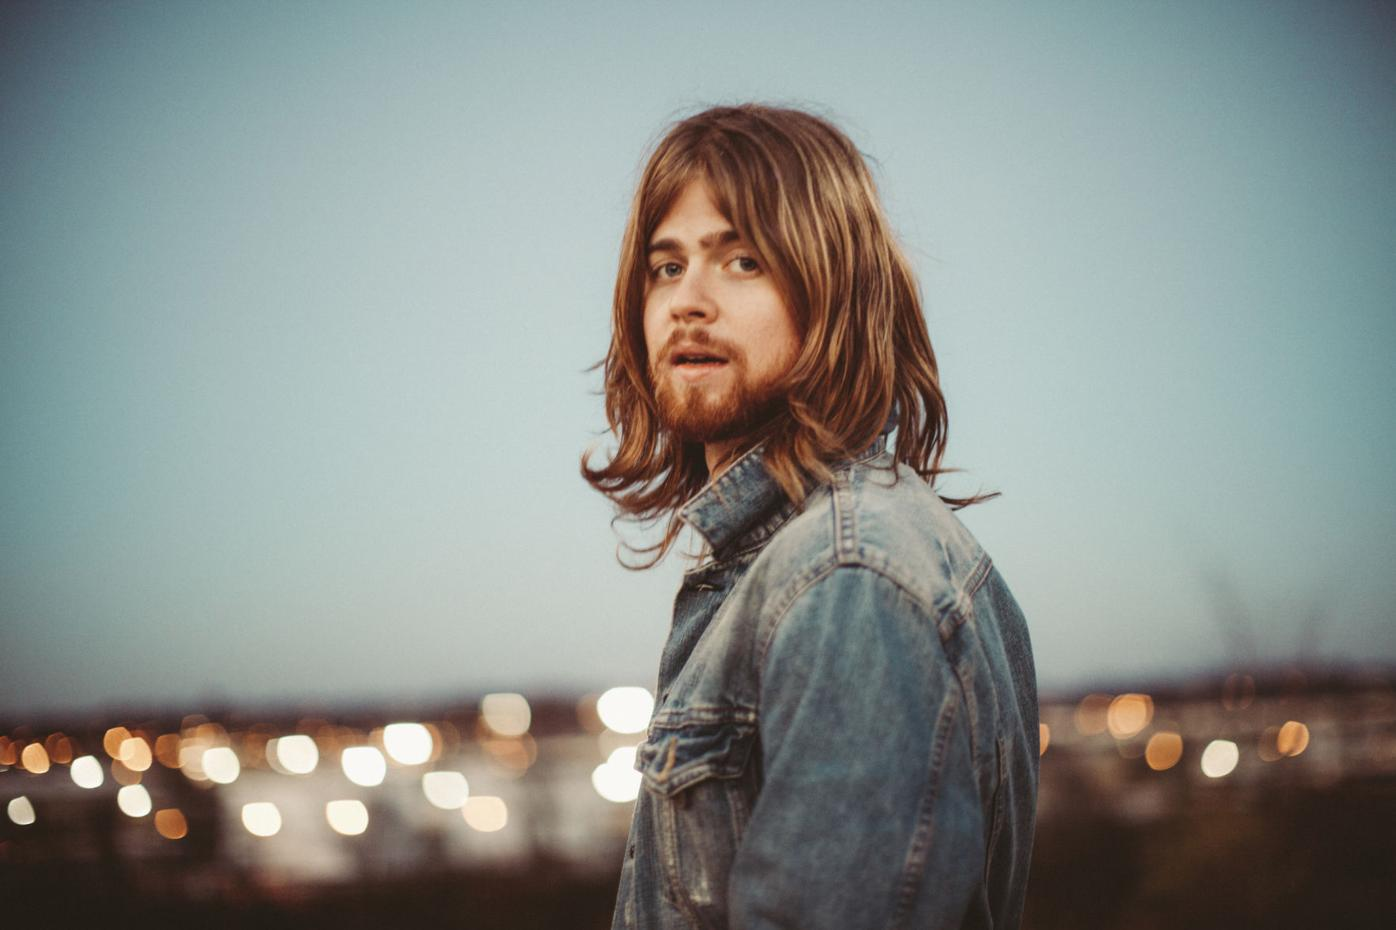 Andrew Leahey is Making a Scene